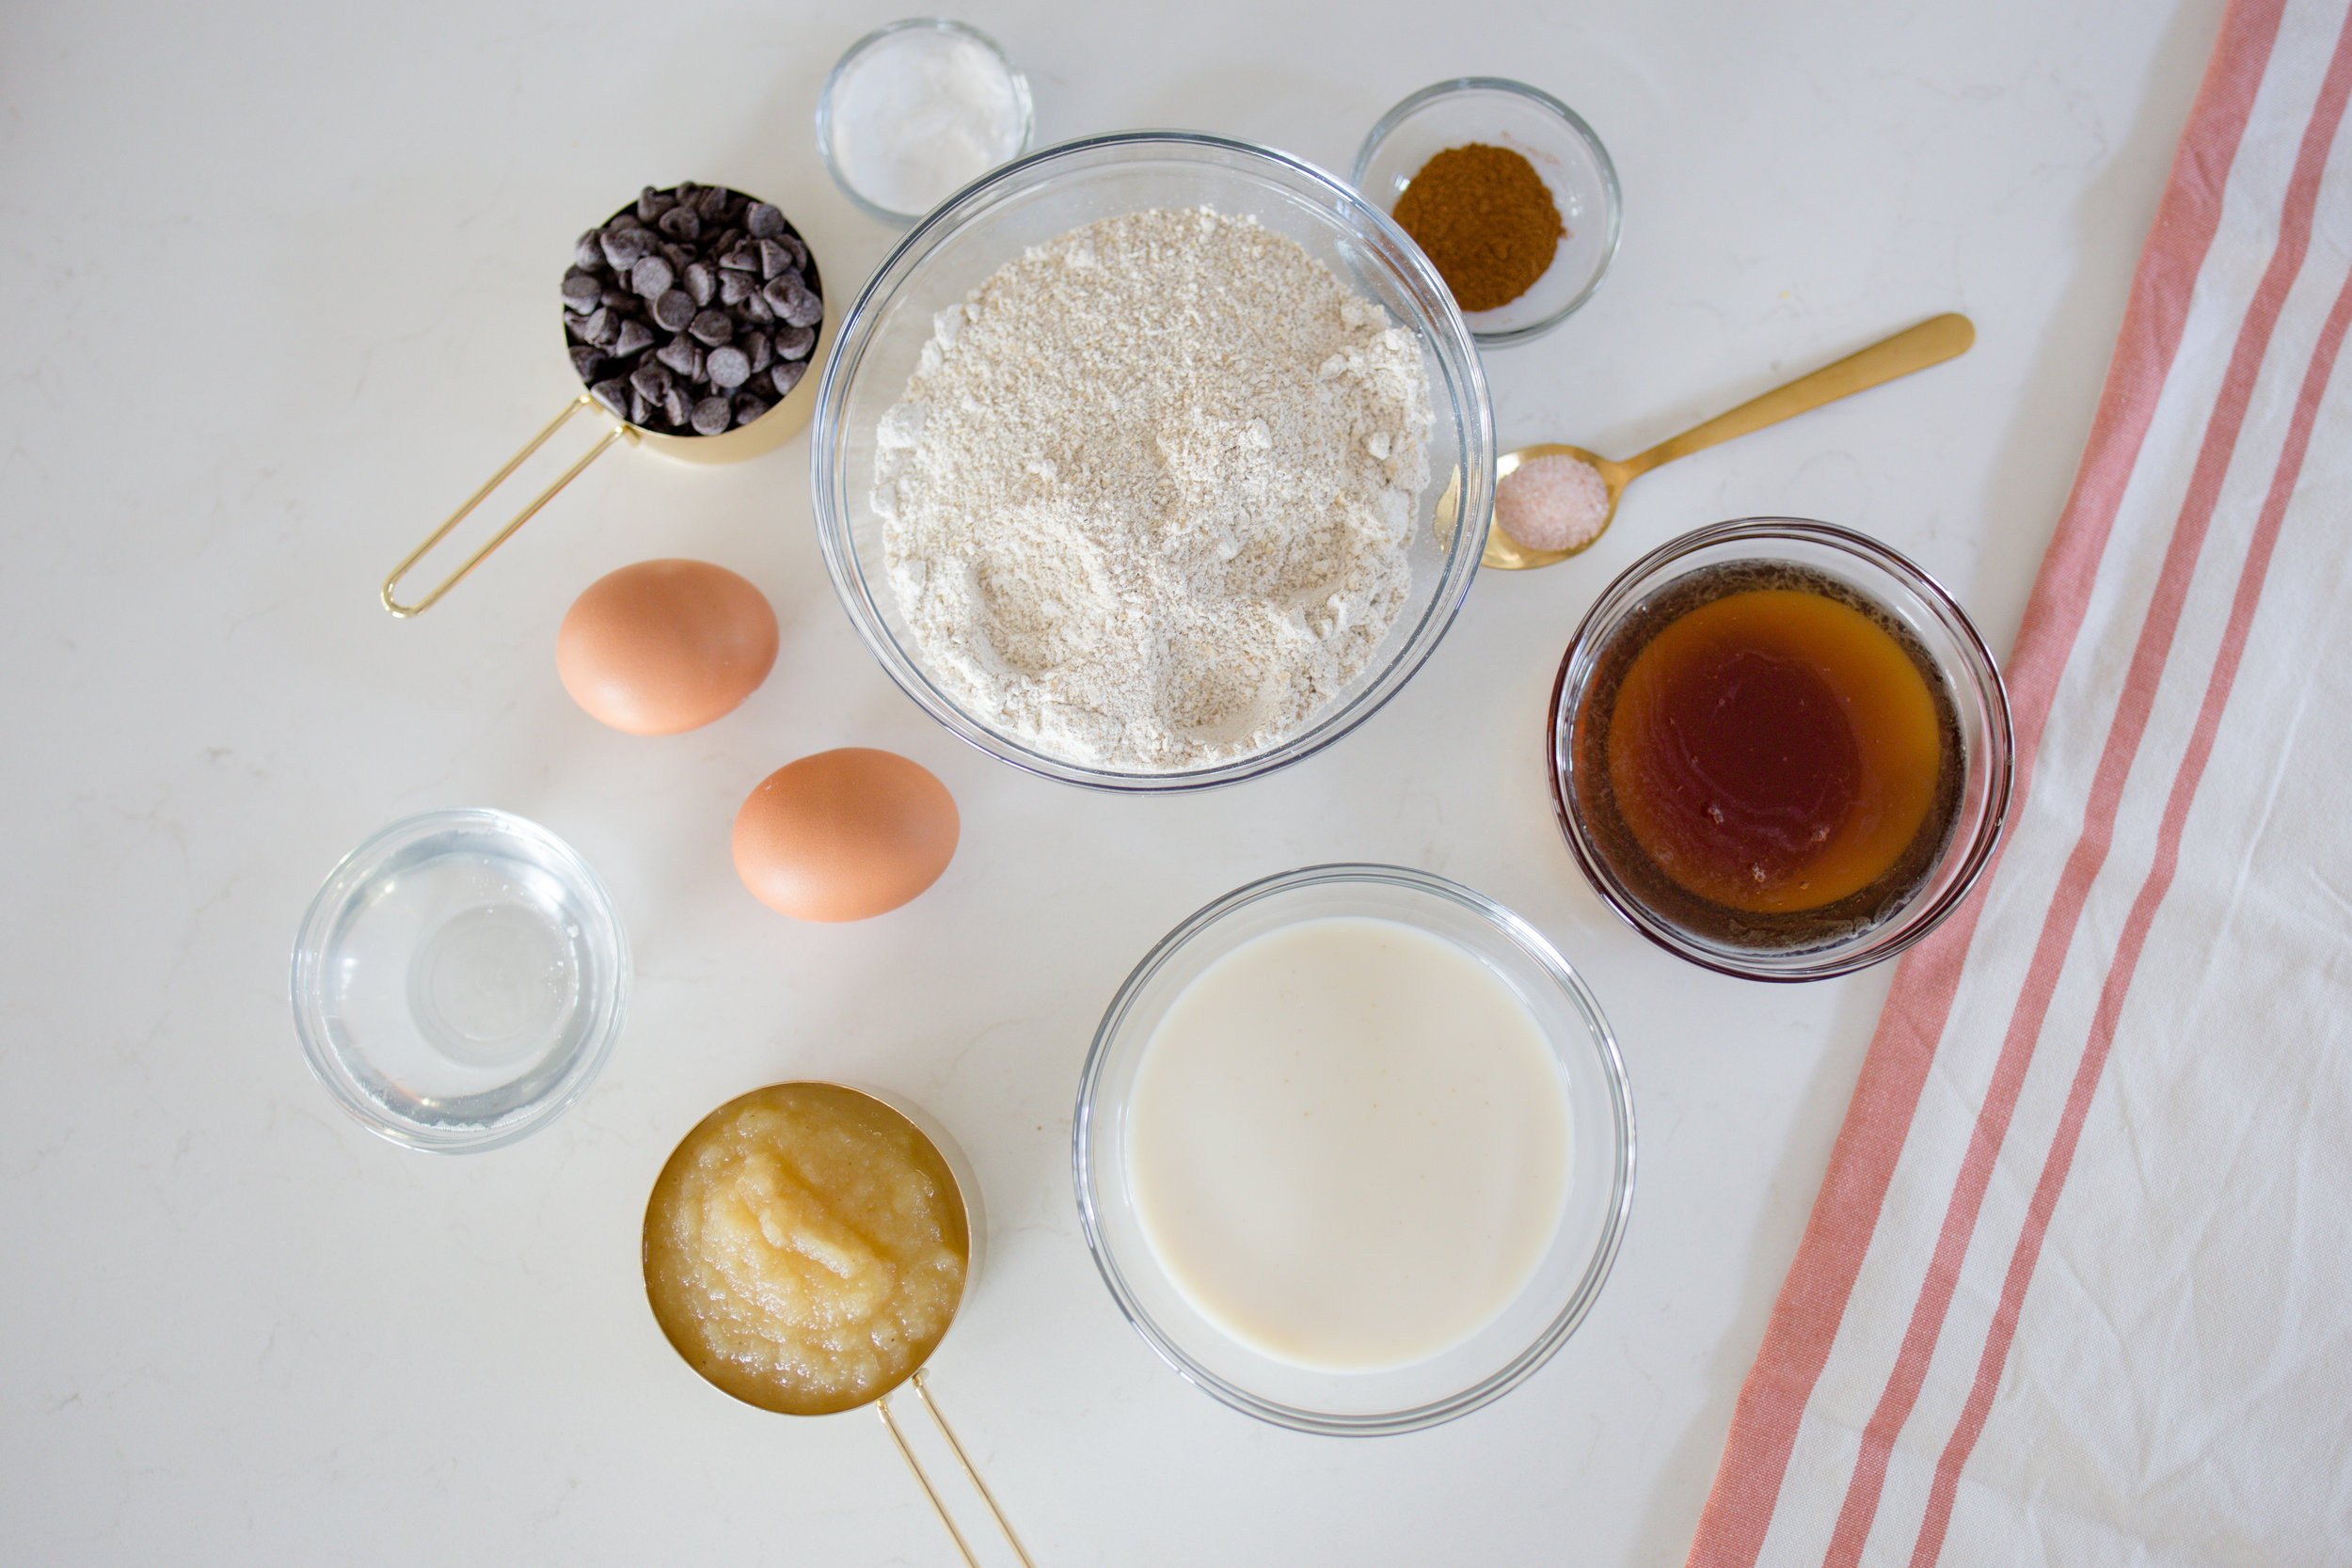 Flat Lay of Ingredients for Healthy Gluten Free Dairy Free Muffins